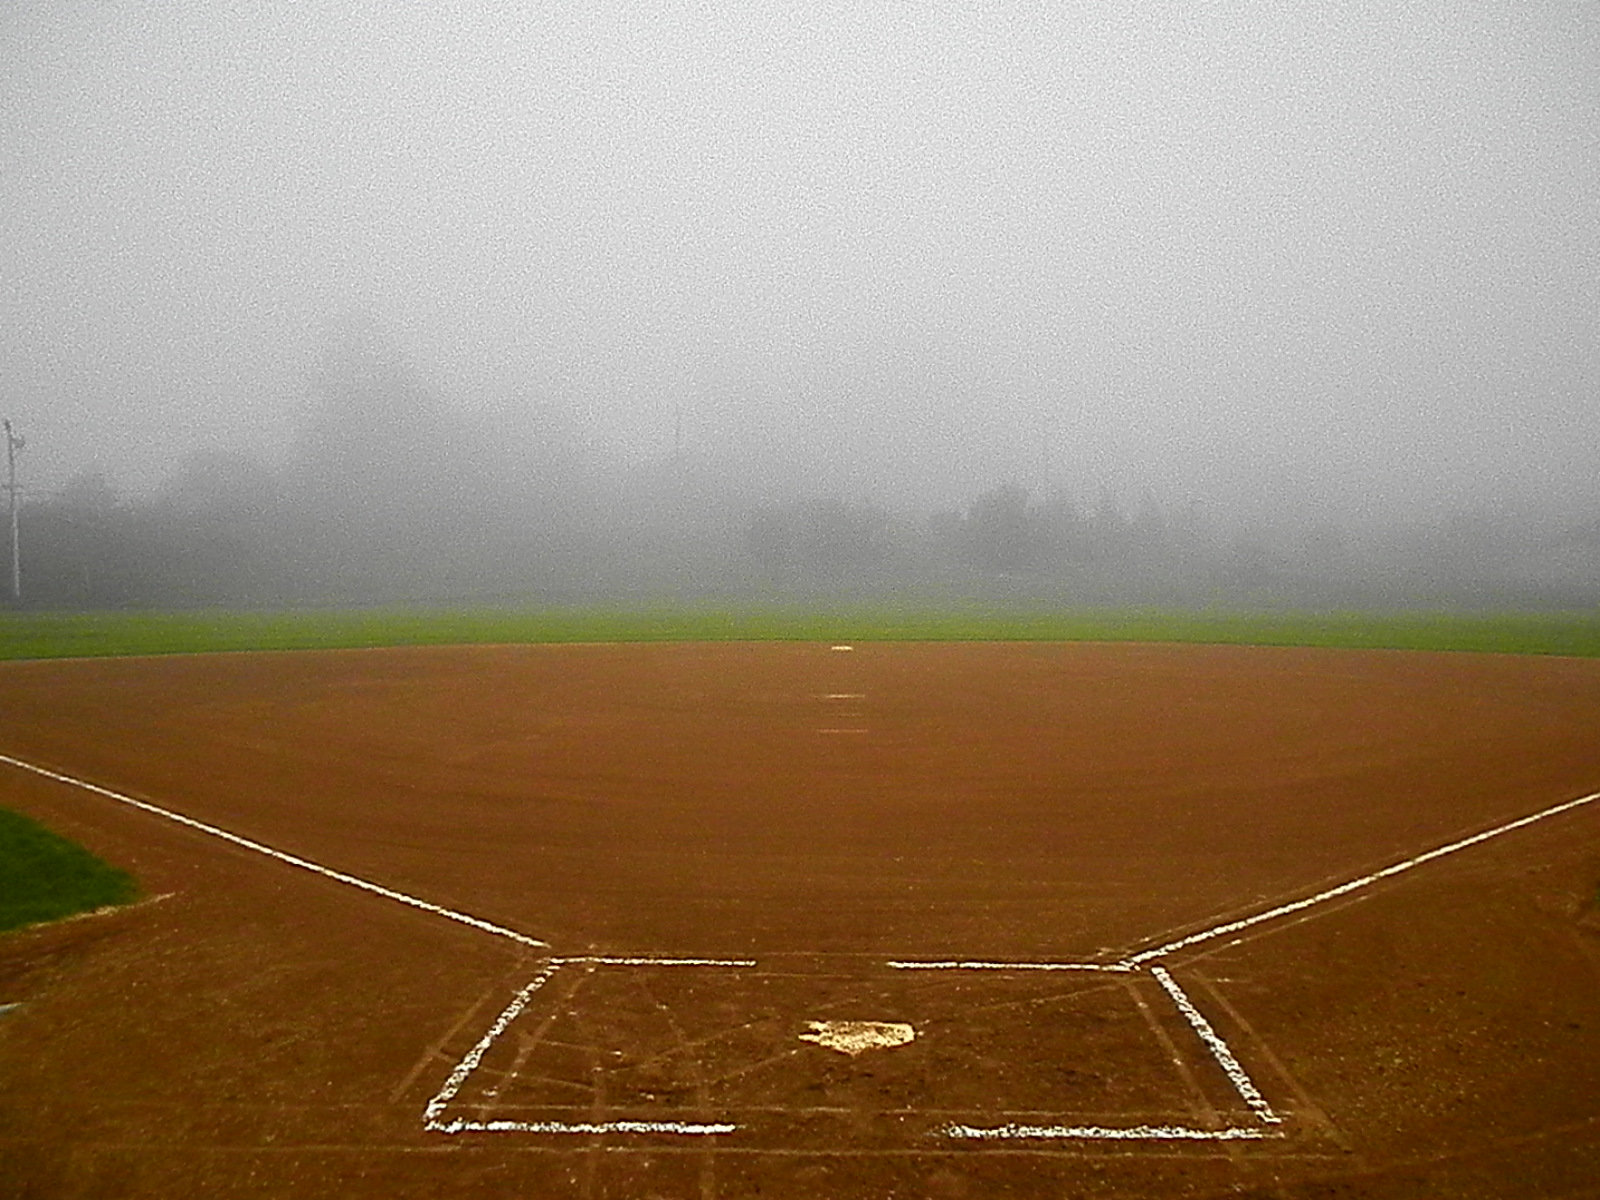 Cool Softball Field Backgrounds Wanted to play softball 1600x1200